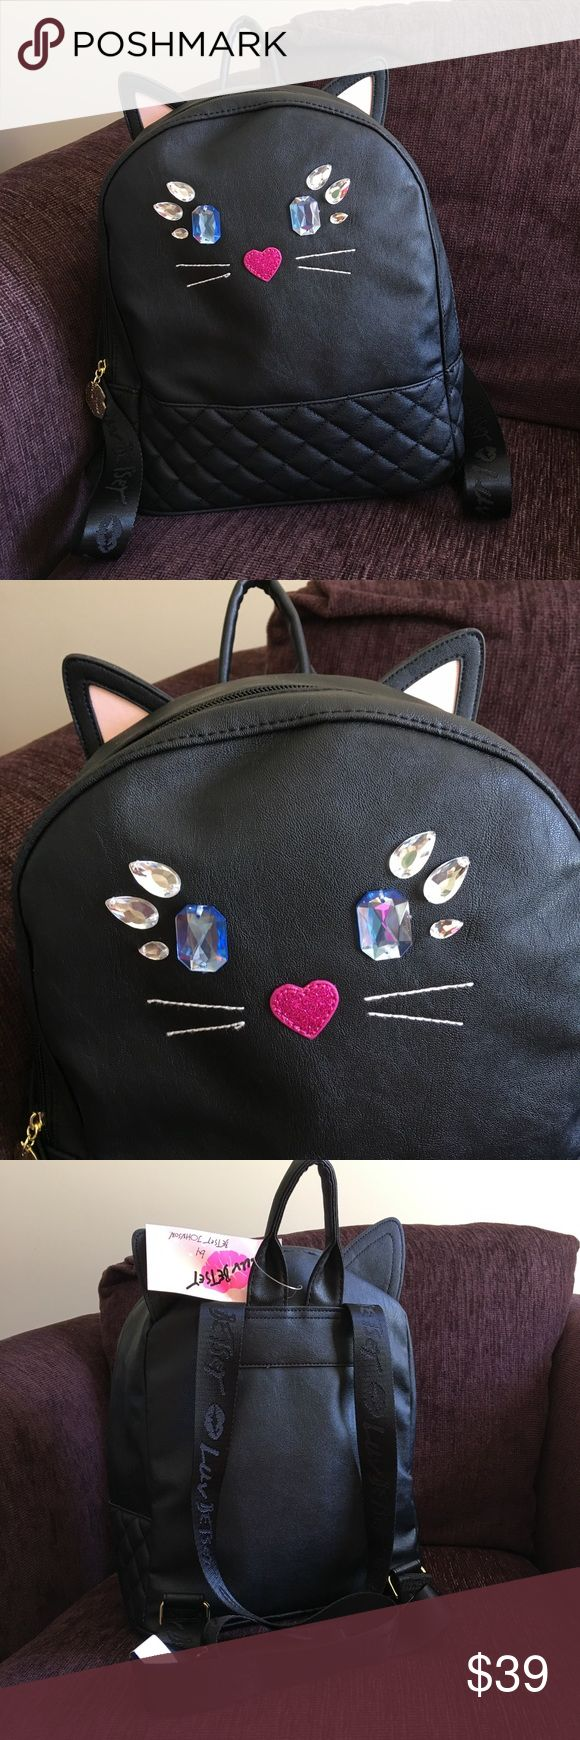 """Luv by Betsey Johnson Cat Bling Backpack NWT Adorable black cat kitty backpack with ears LBLUCY Luv by Betsey Johnson. Rhinestone Blue Eyes And Clear Eyelashes With A Pink Glitter Heart Nose on the front, Quilted Bottom, Gold toned Hardware, Zip Closure And Camouflaged """"Luv Betsey"""" On Adjustable Straps. The interior is Fully Lined Gray White Dots And Stars, with Slip Pockets And Zippered Pocket. 12""""H x 10""""W x 6""""D. Straps up to 26"""". It was kept in a smoke free home. Betsey Johnson Bags…"""